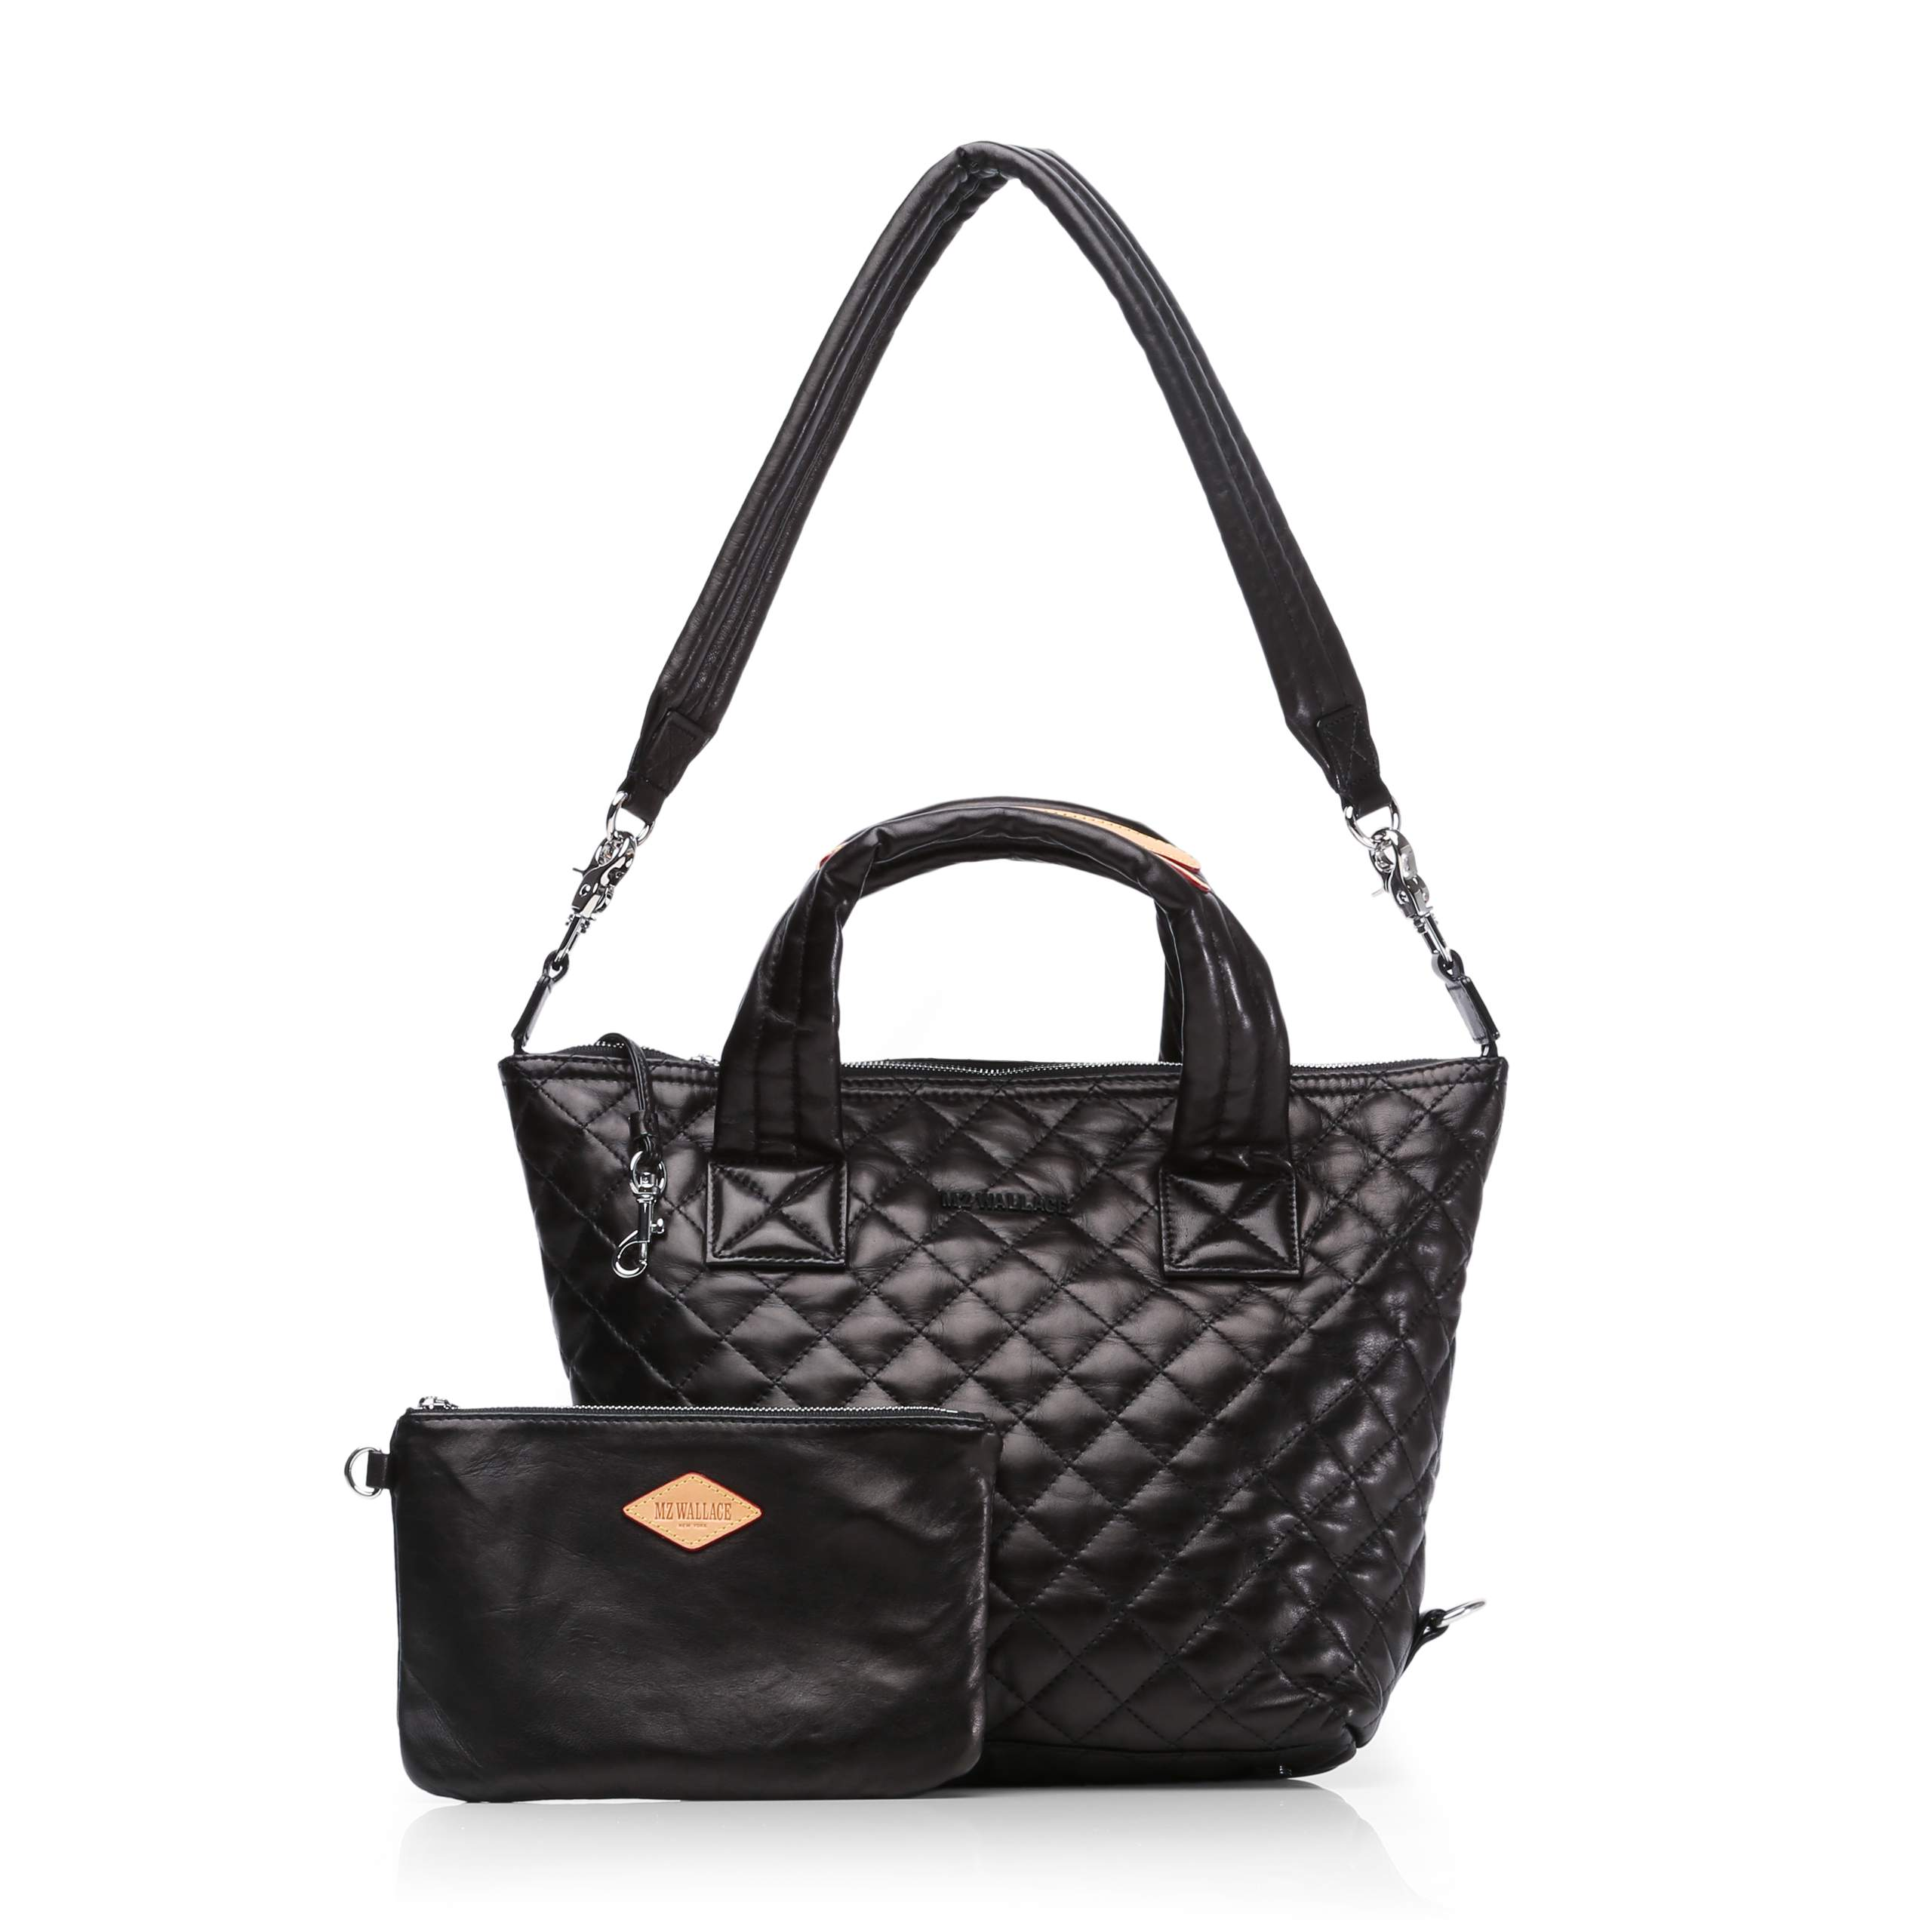 Small Sutton - Black Quilted Leather (2881153) in color Black Leather